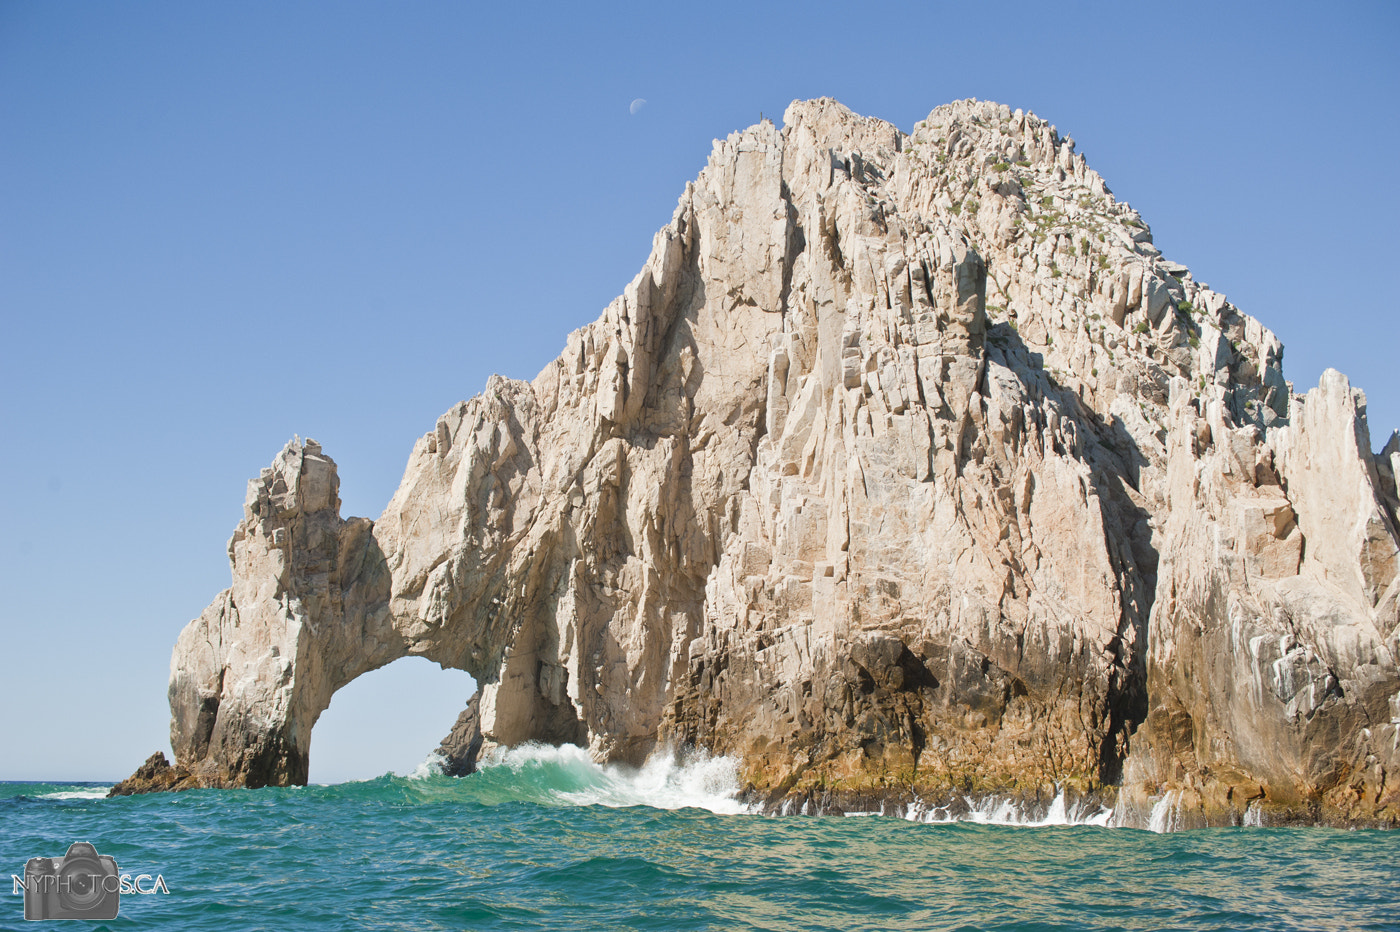 Photograph El Arco (The Arch) by Neil Young on 500px